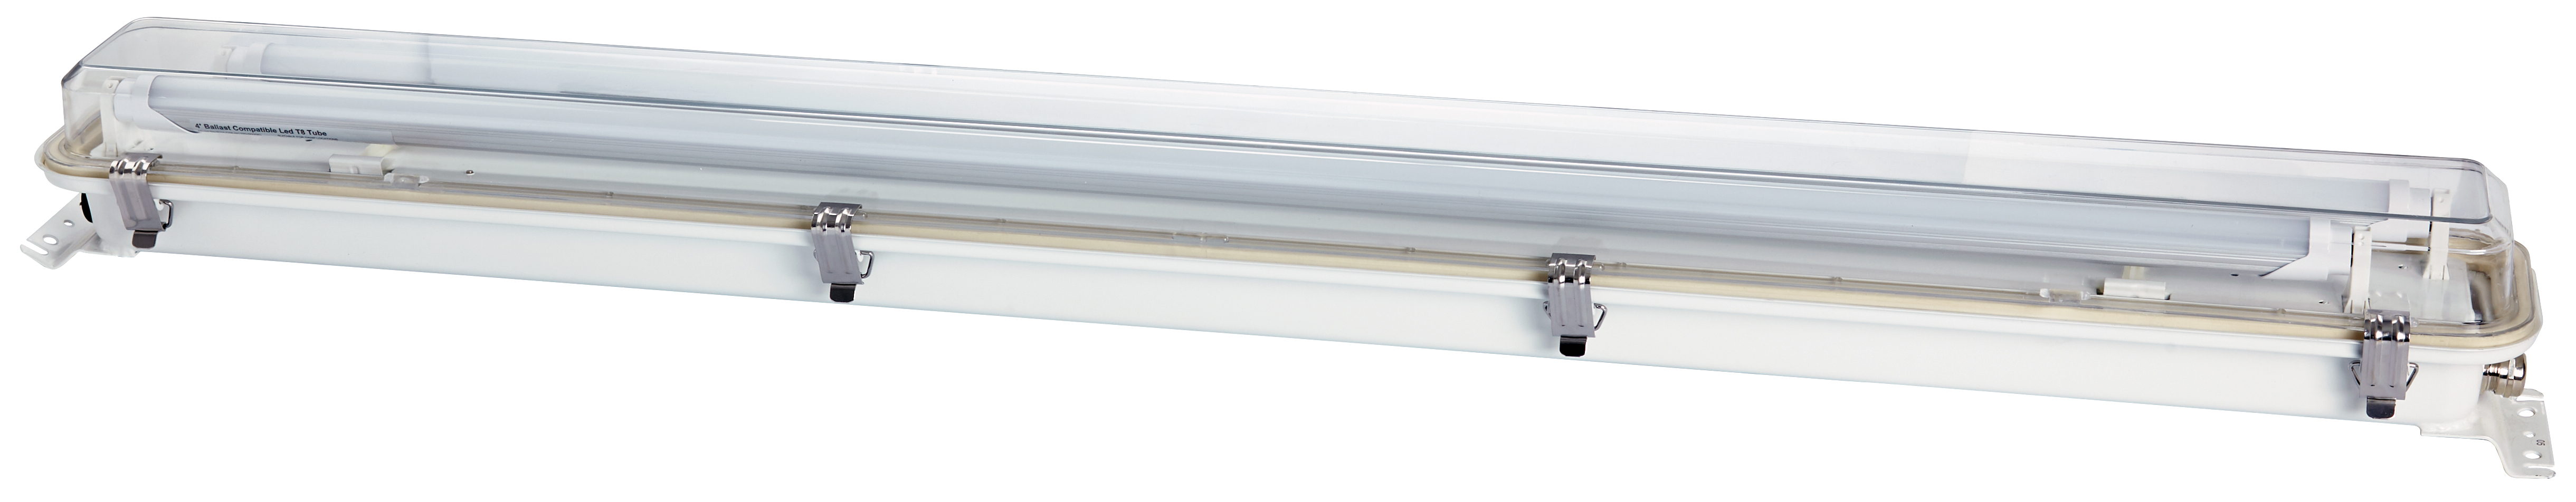 "Value 40W 48"" Vapor Tight Fixture"